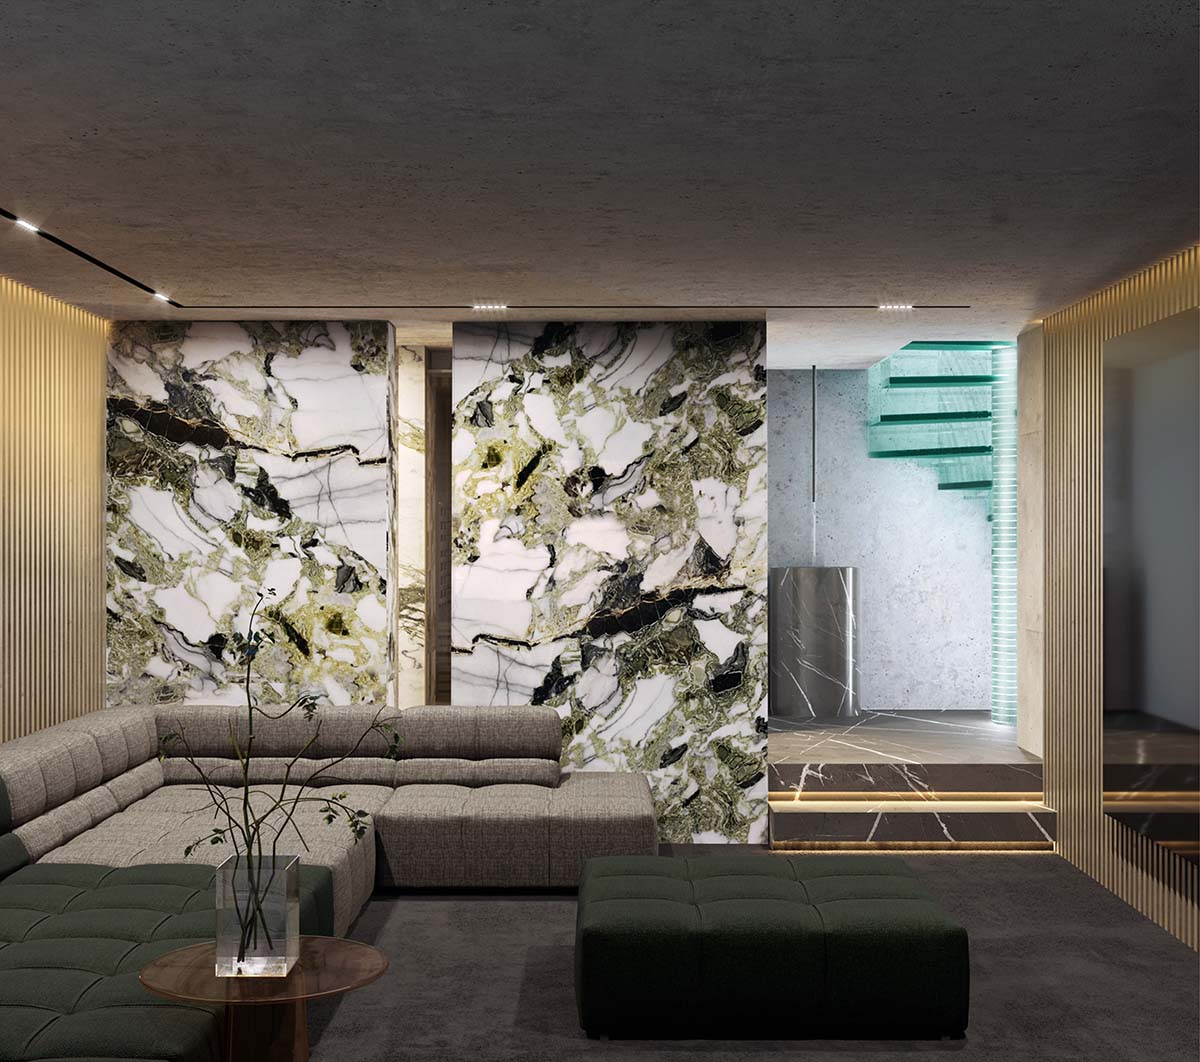 Brutalist living room with wall made of calacatta jade marble